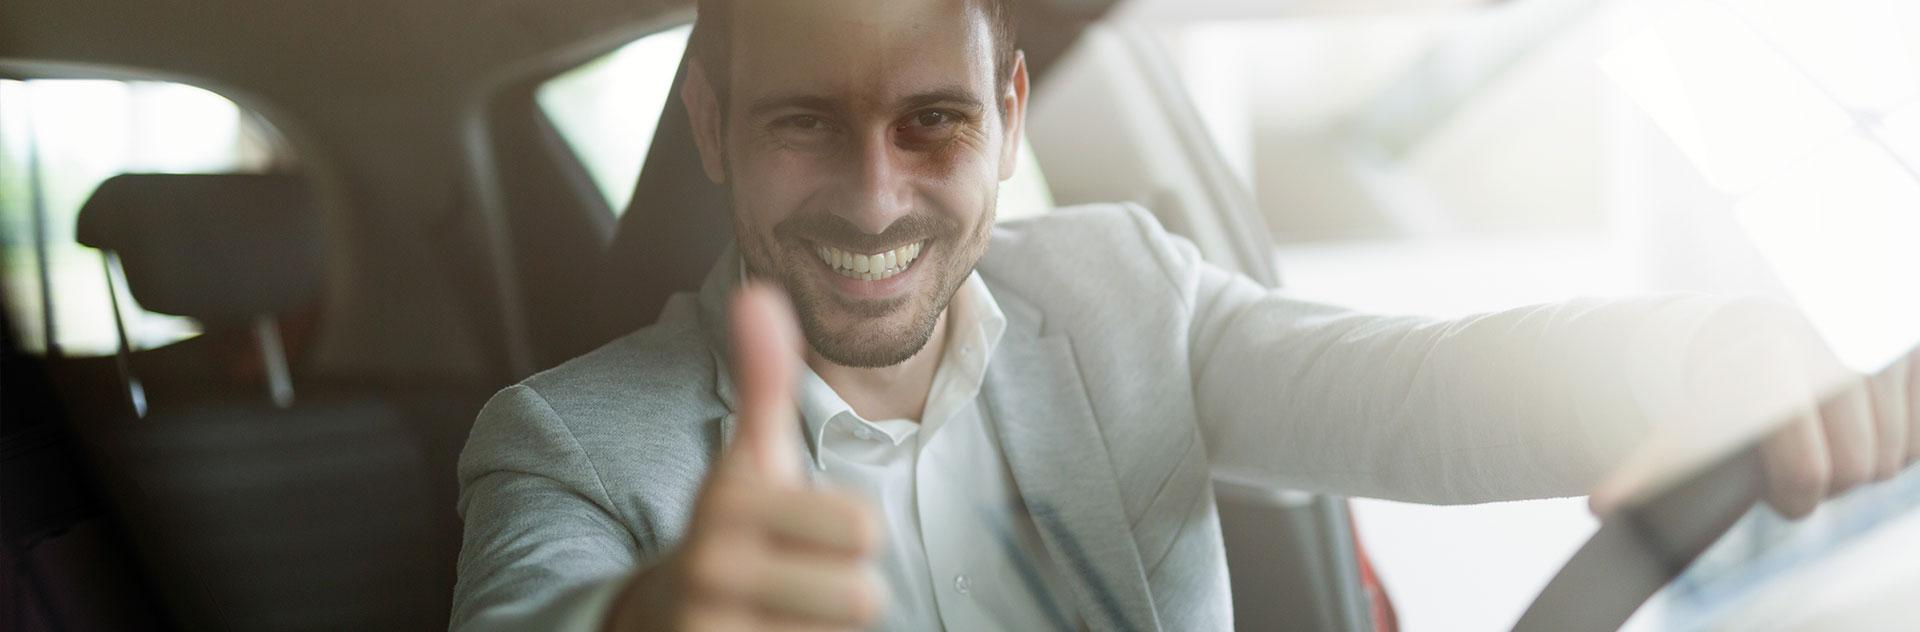 Man sits in the car and shows thumbs up